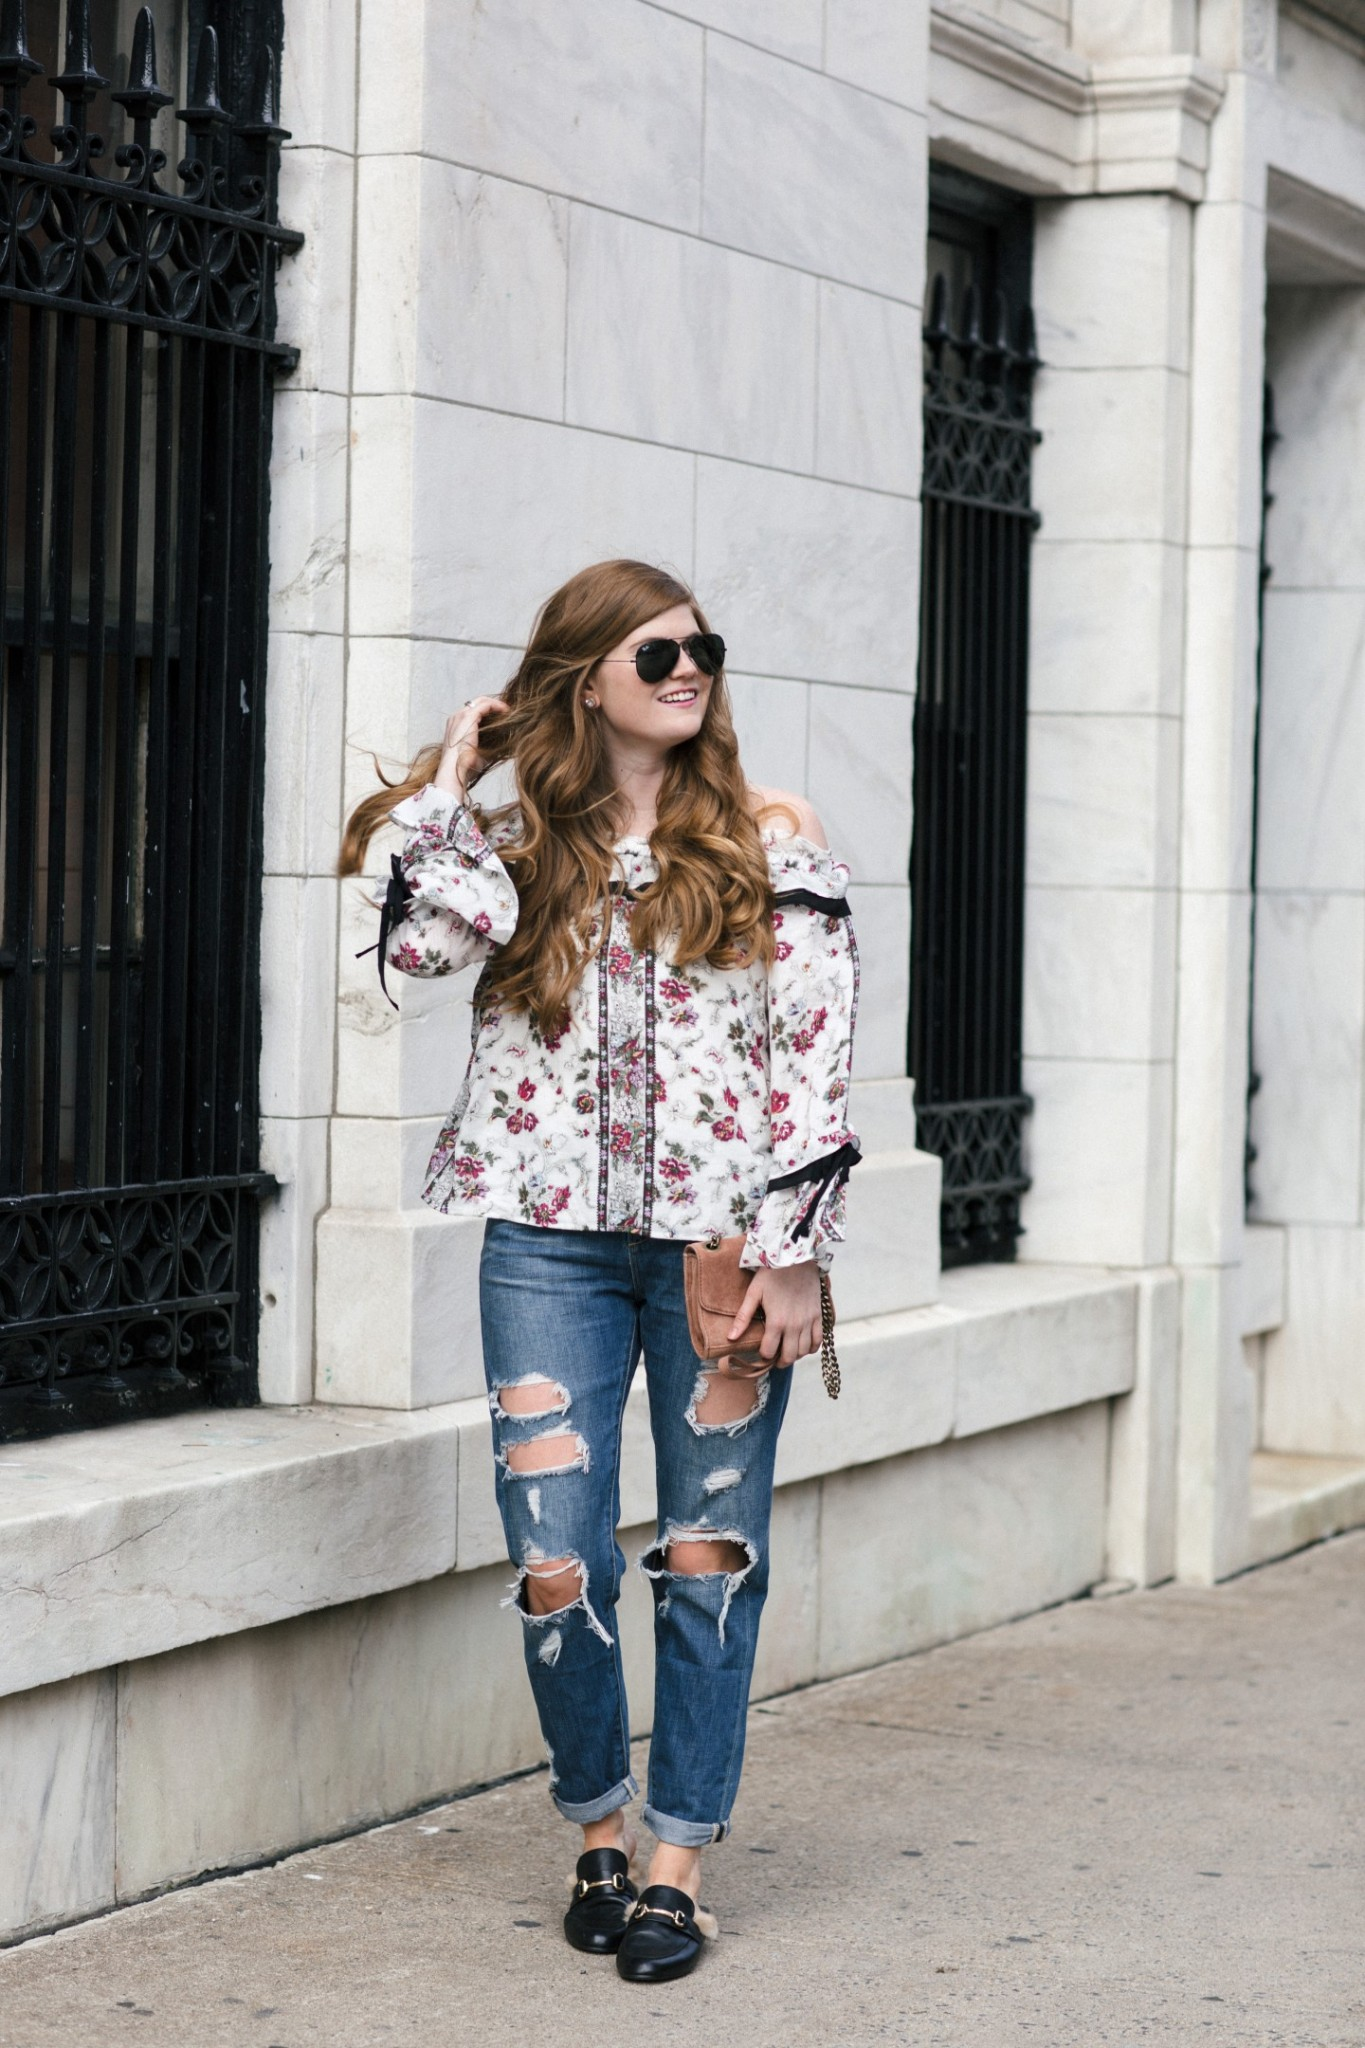 Lifestyle blogger Mollie Sheperdson styles a top from the Club Monaco NYFW Presentation